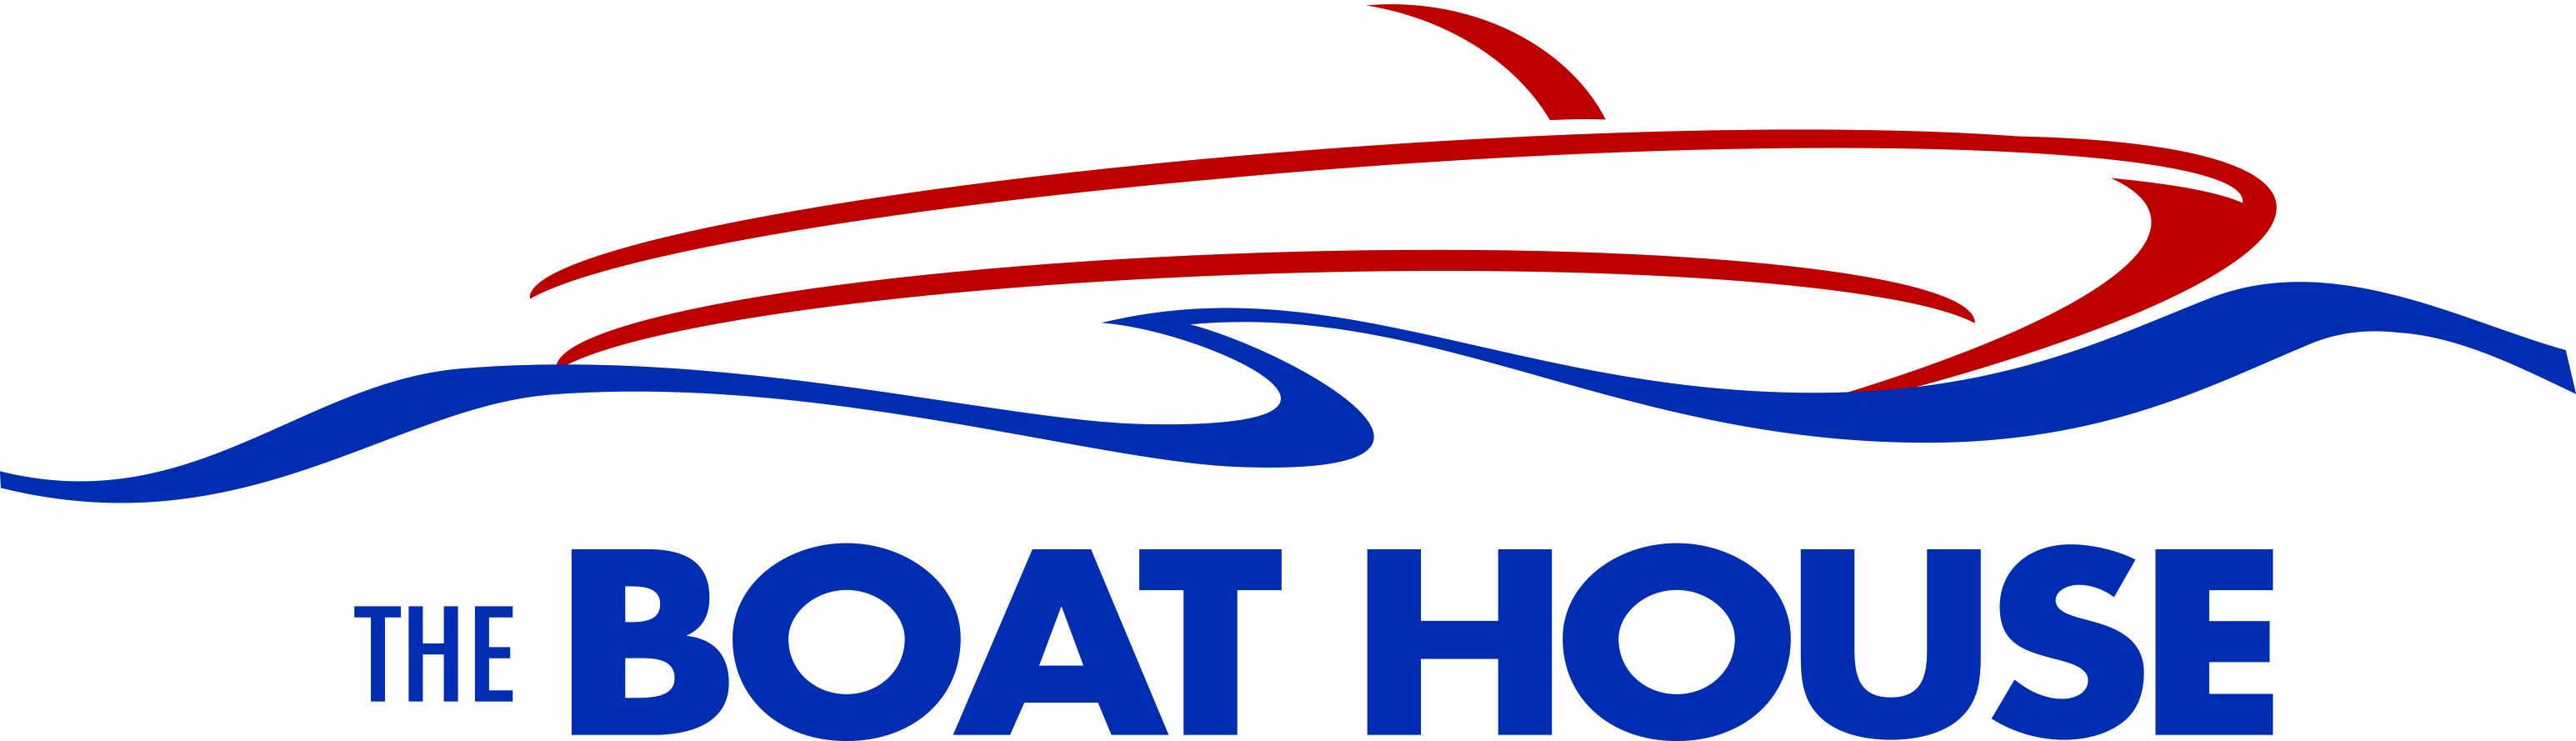 BOAT HOUSE OF PORT CHARLOTTE, THE